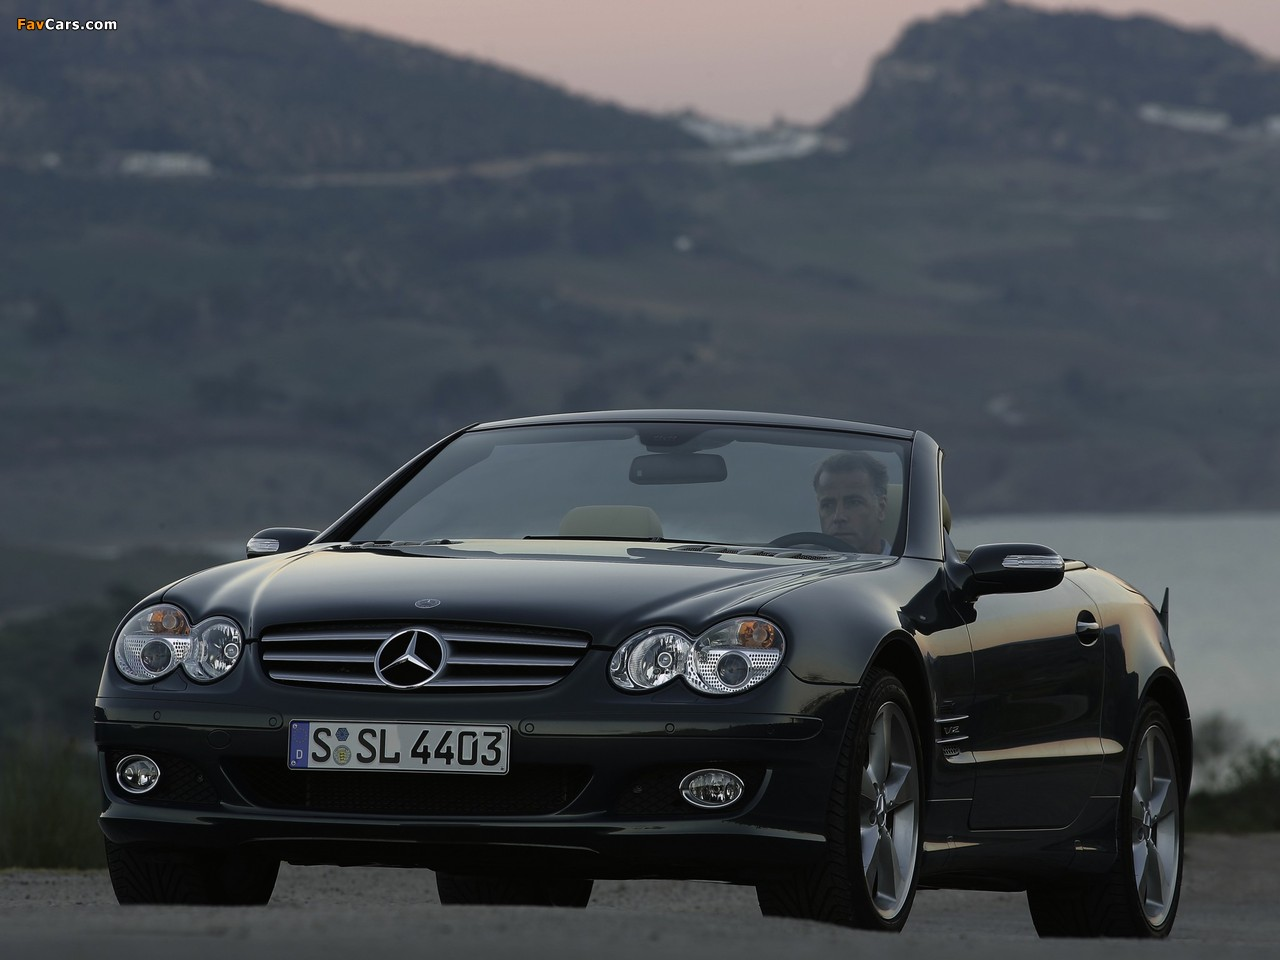 mercedes benz sl 600 r230 2005 08 wallpapers 1280x960. Black Bedroom Furniture Sets. Home Design Ideas